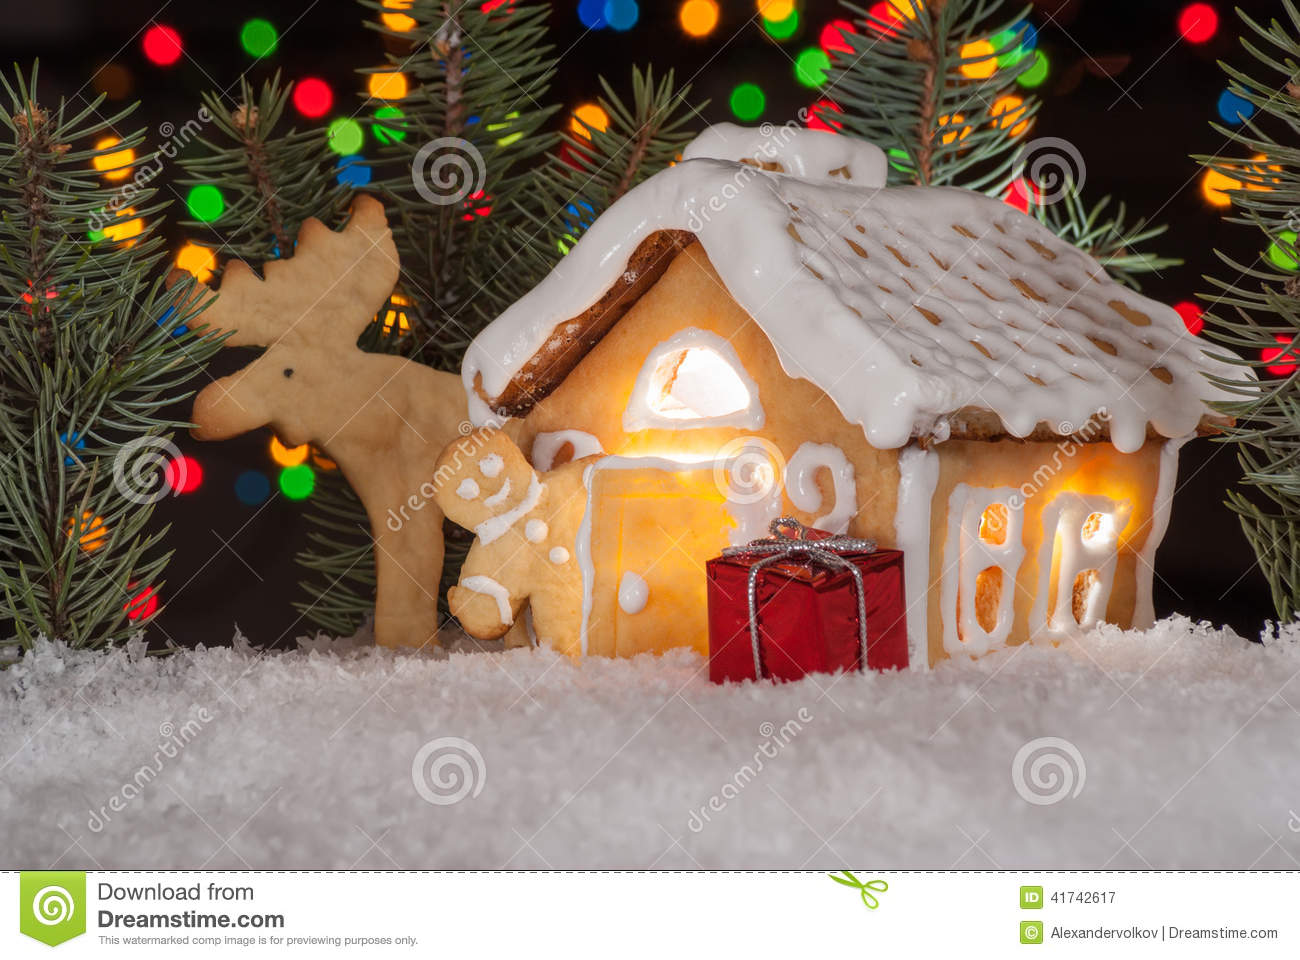 Gingerbread house christmas tree decoration